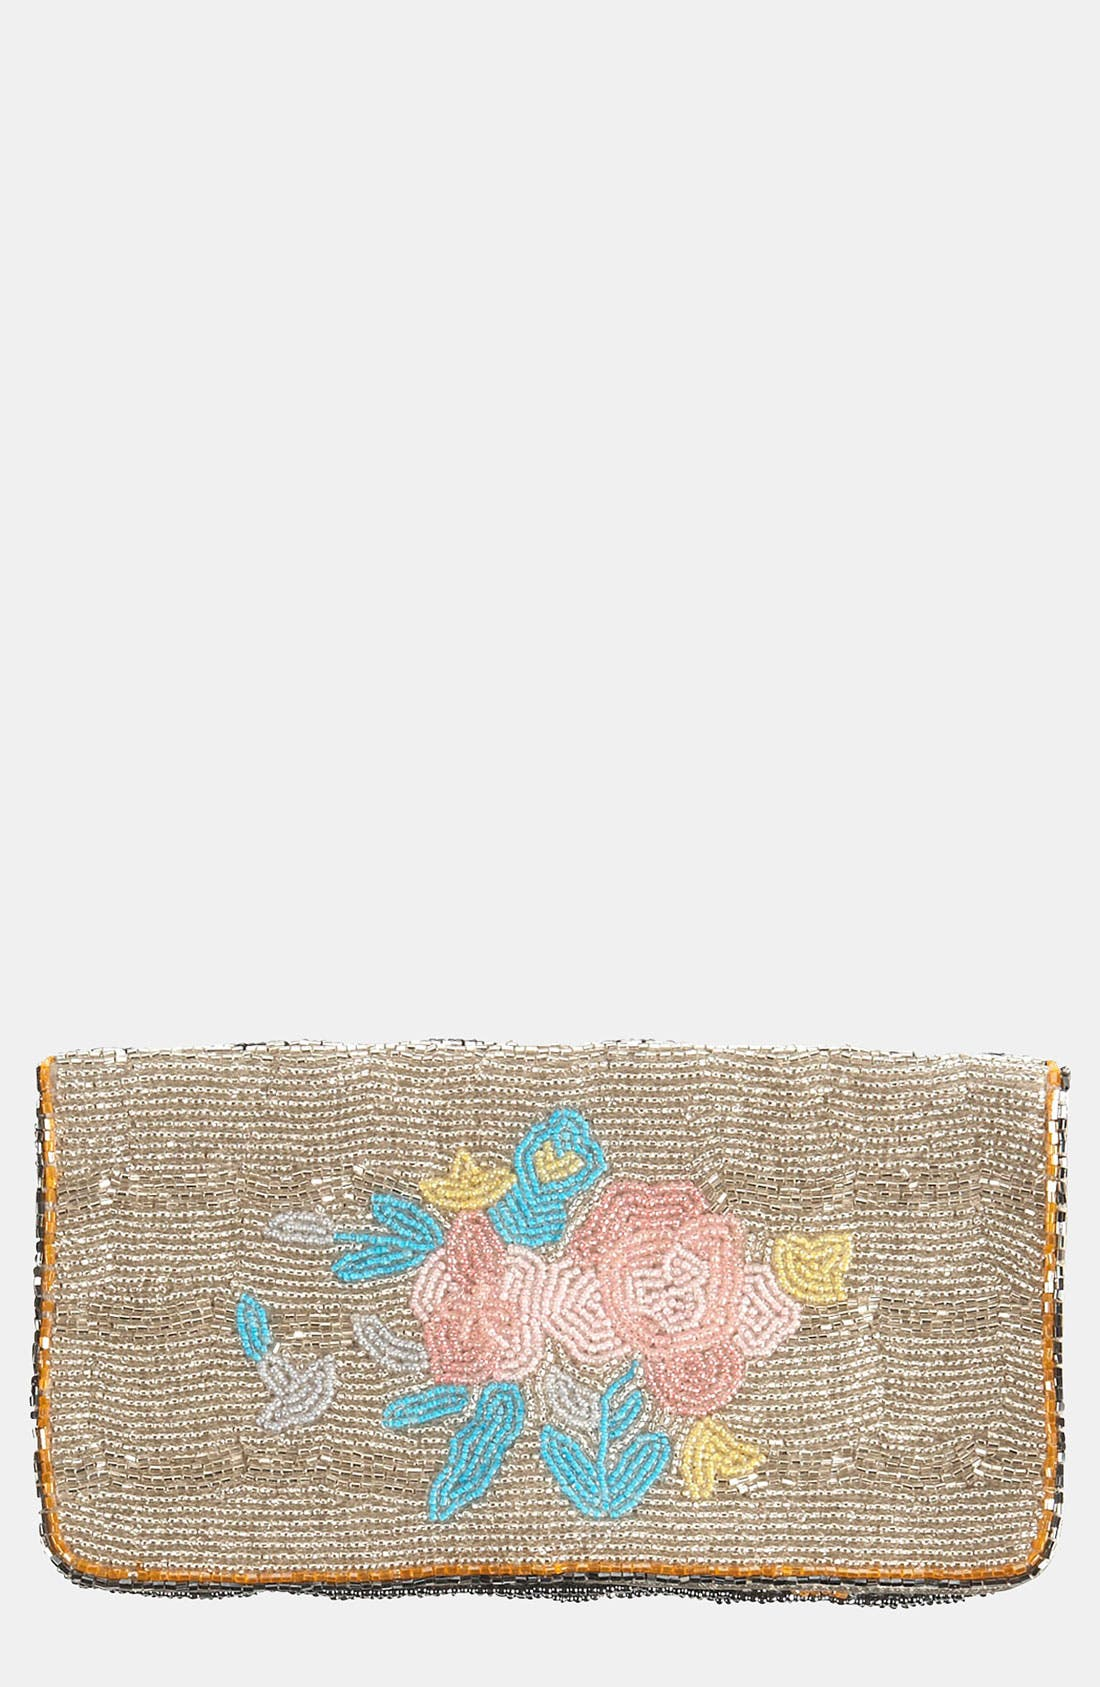 Main Image - Topshop 'Rose' Beaded Clutch